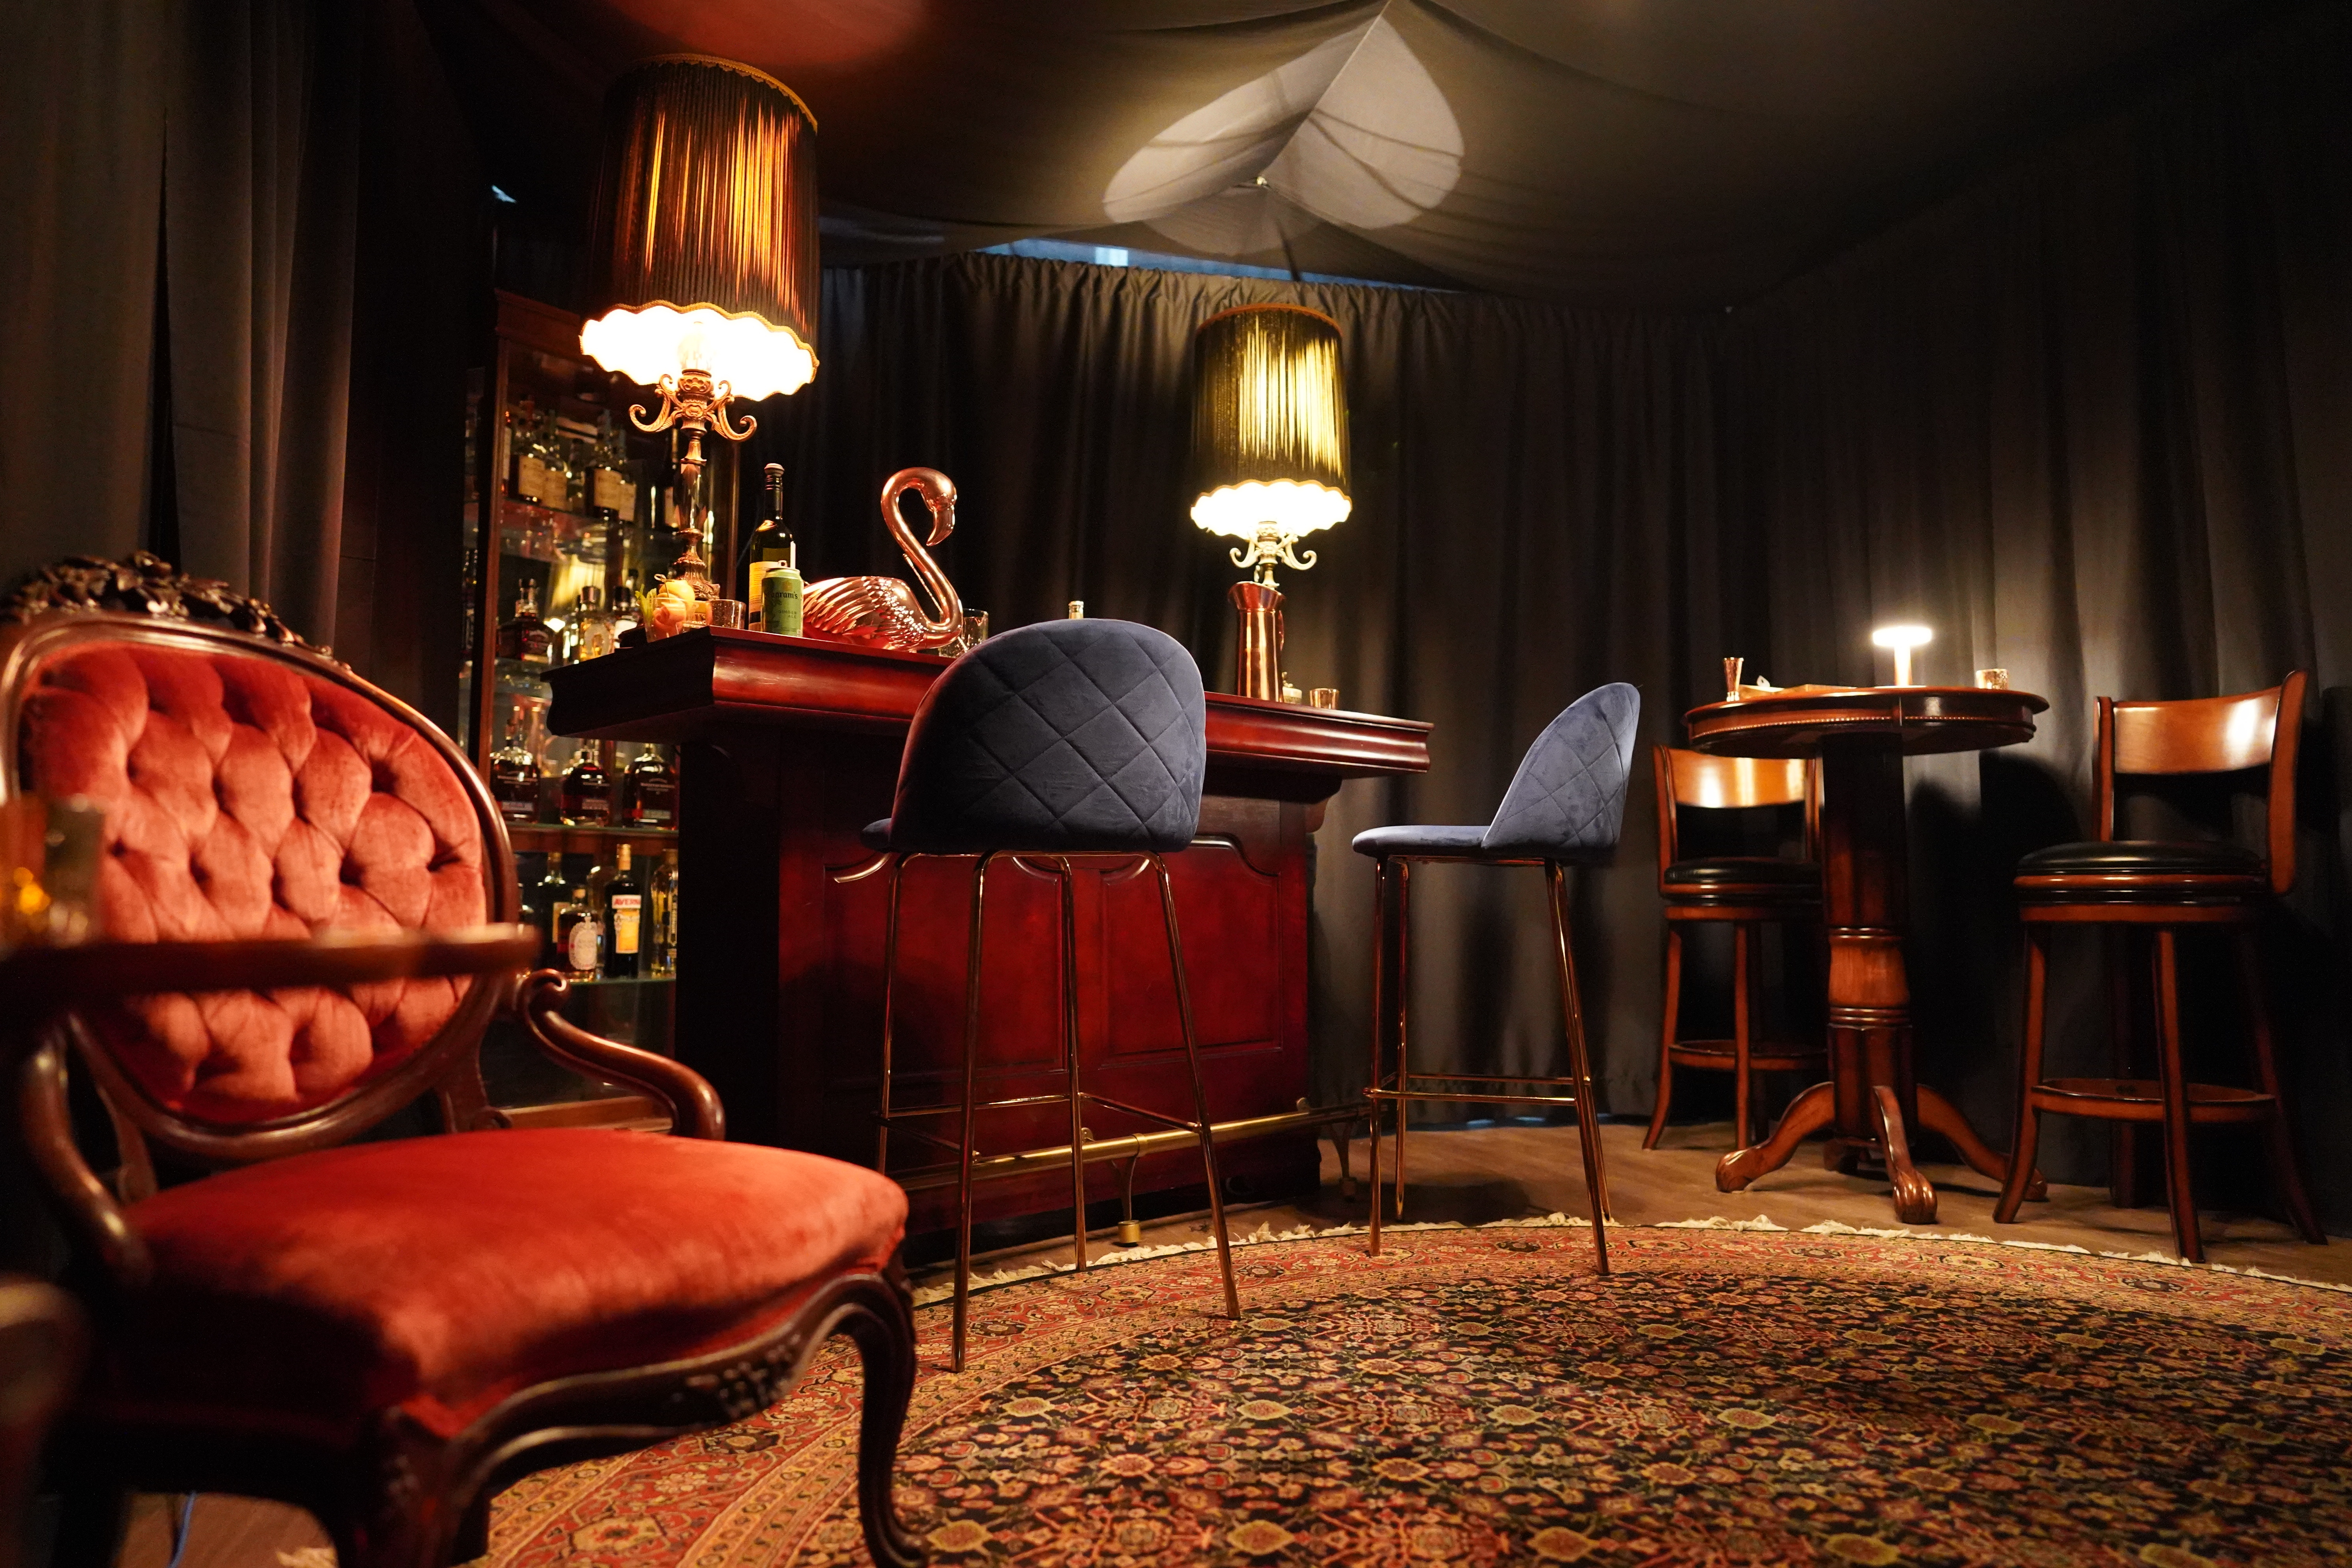 dark bar with red chair in the foreground, two blue velvet chairs in the background